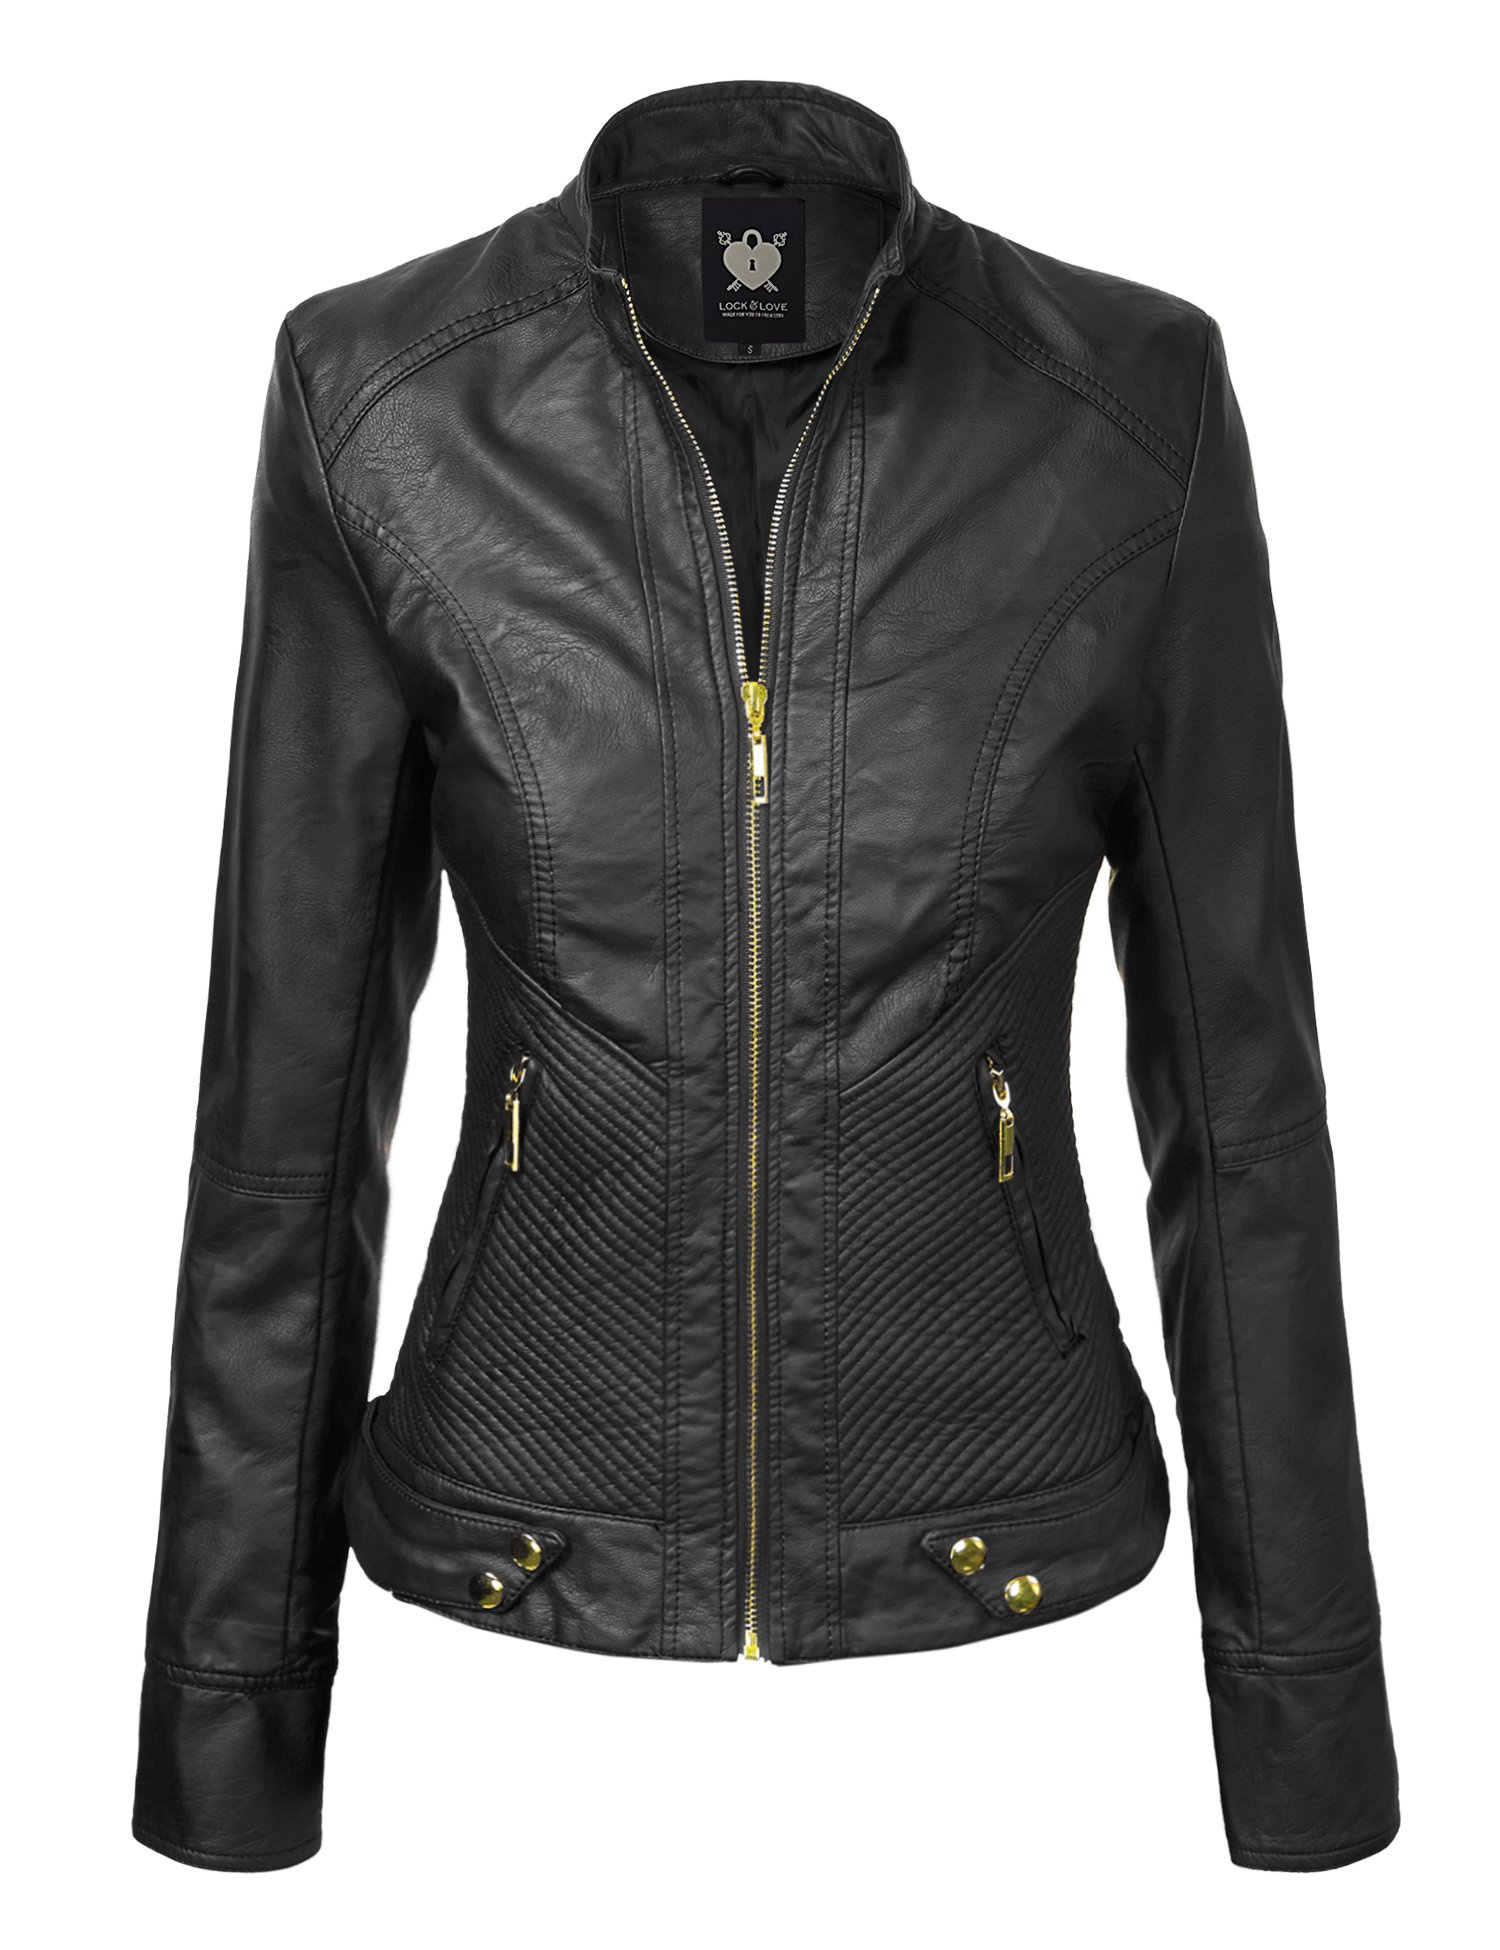 Lock and Love WJC747 Womens Dressy Vegan Leather Biker Jacket L Black by Lock and Love